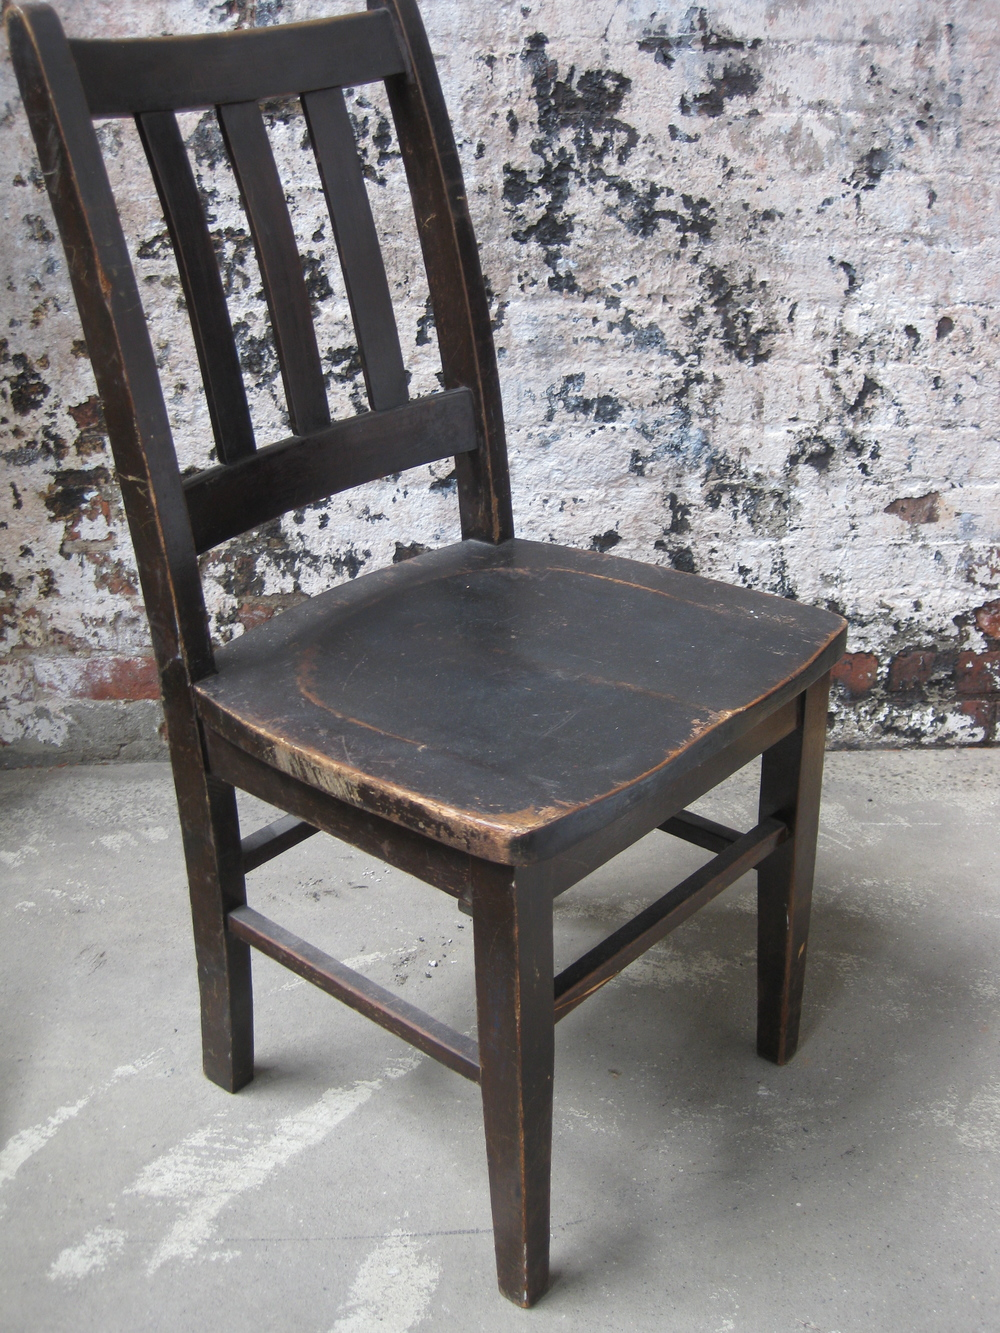 Old Wood Chairs ~ Antique wooden chair furniture